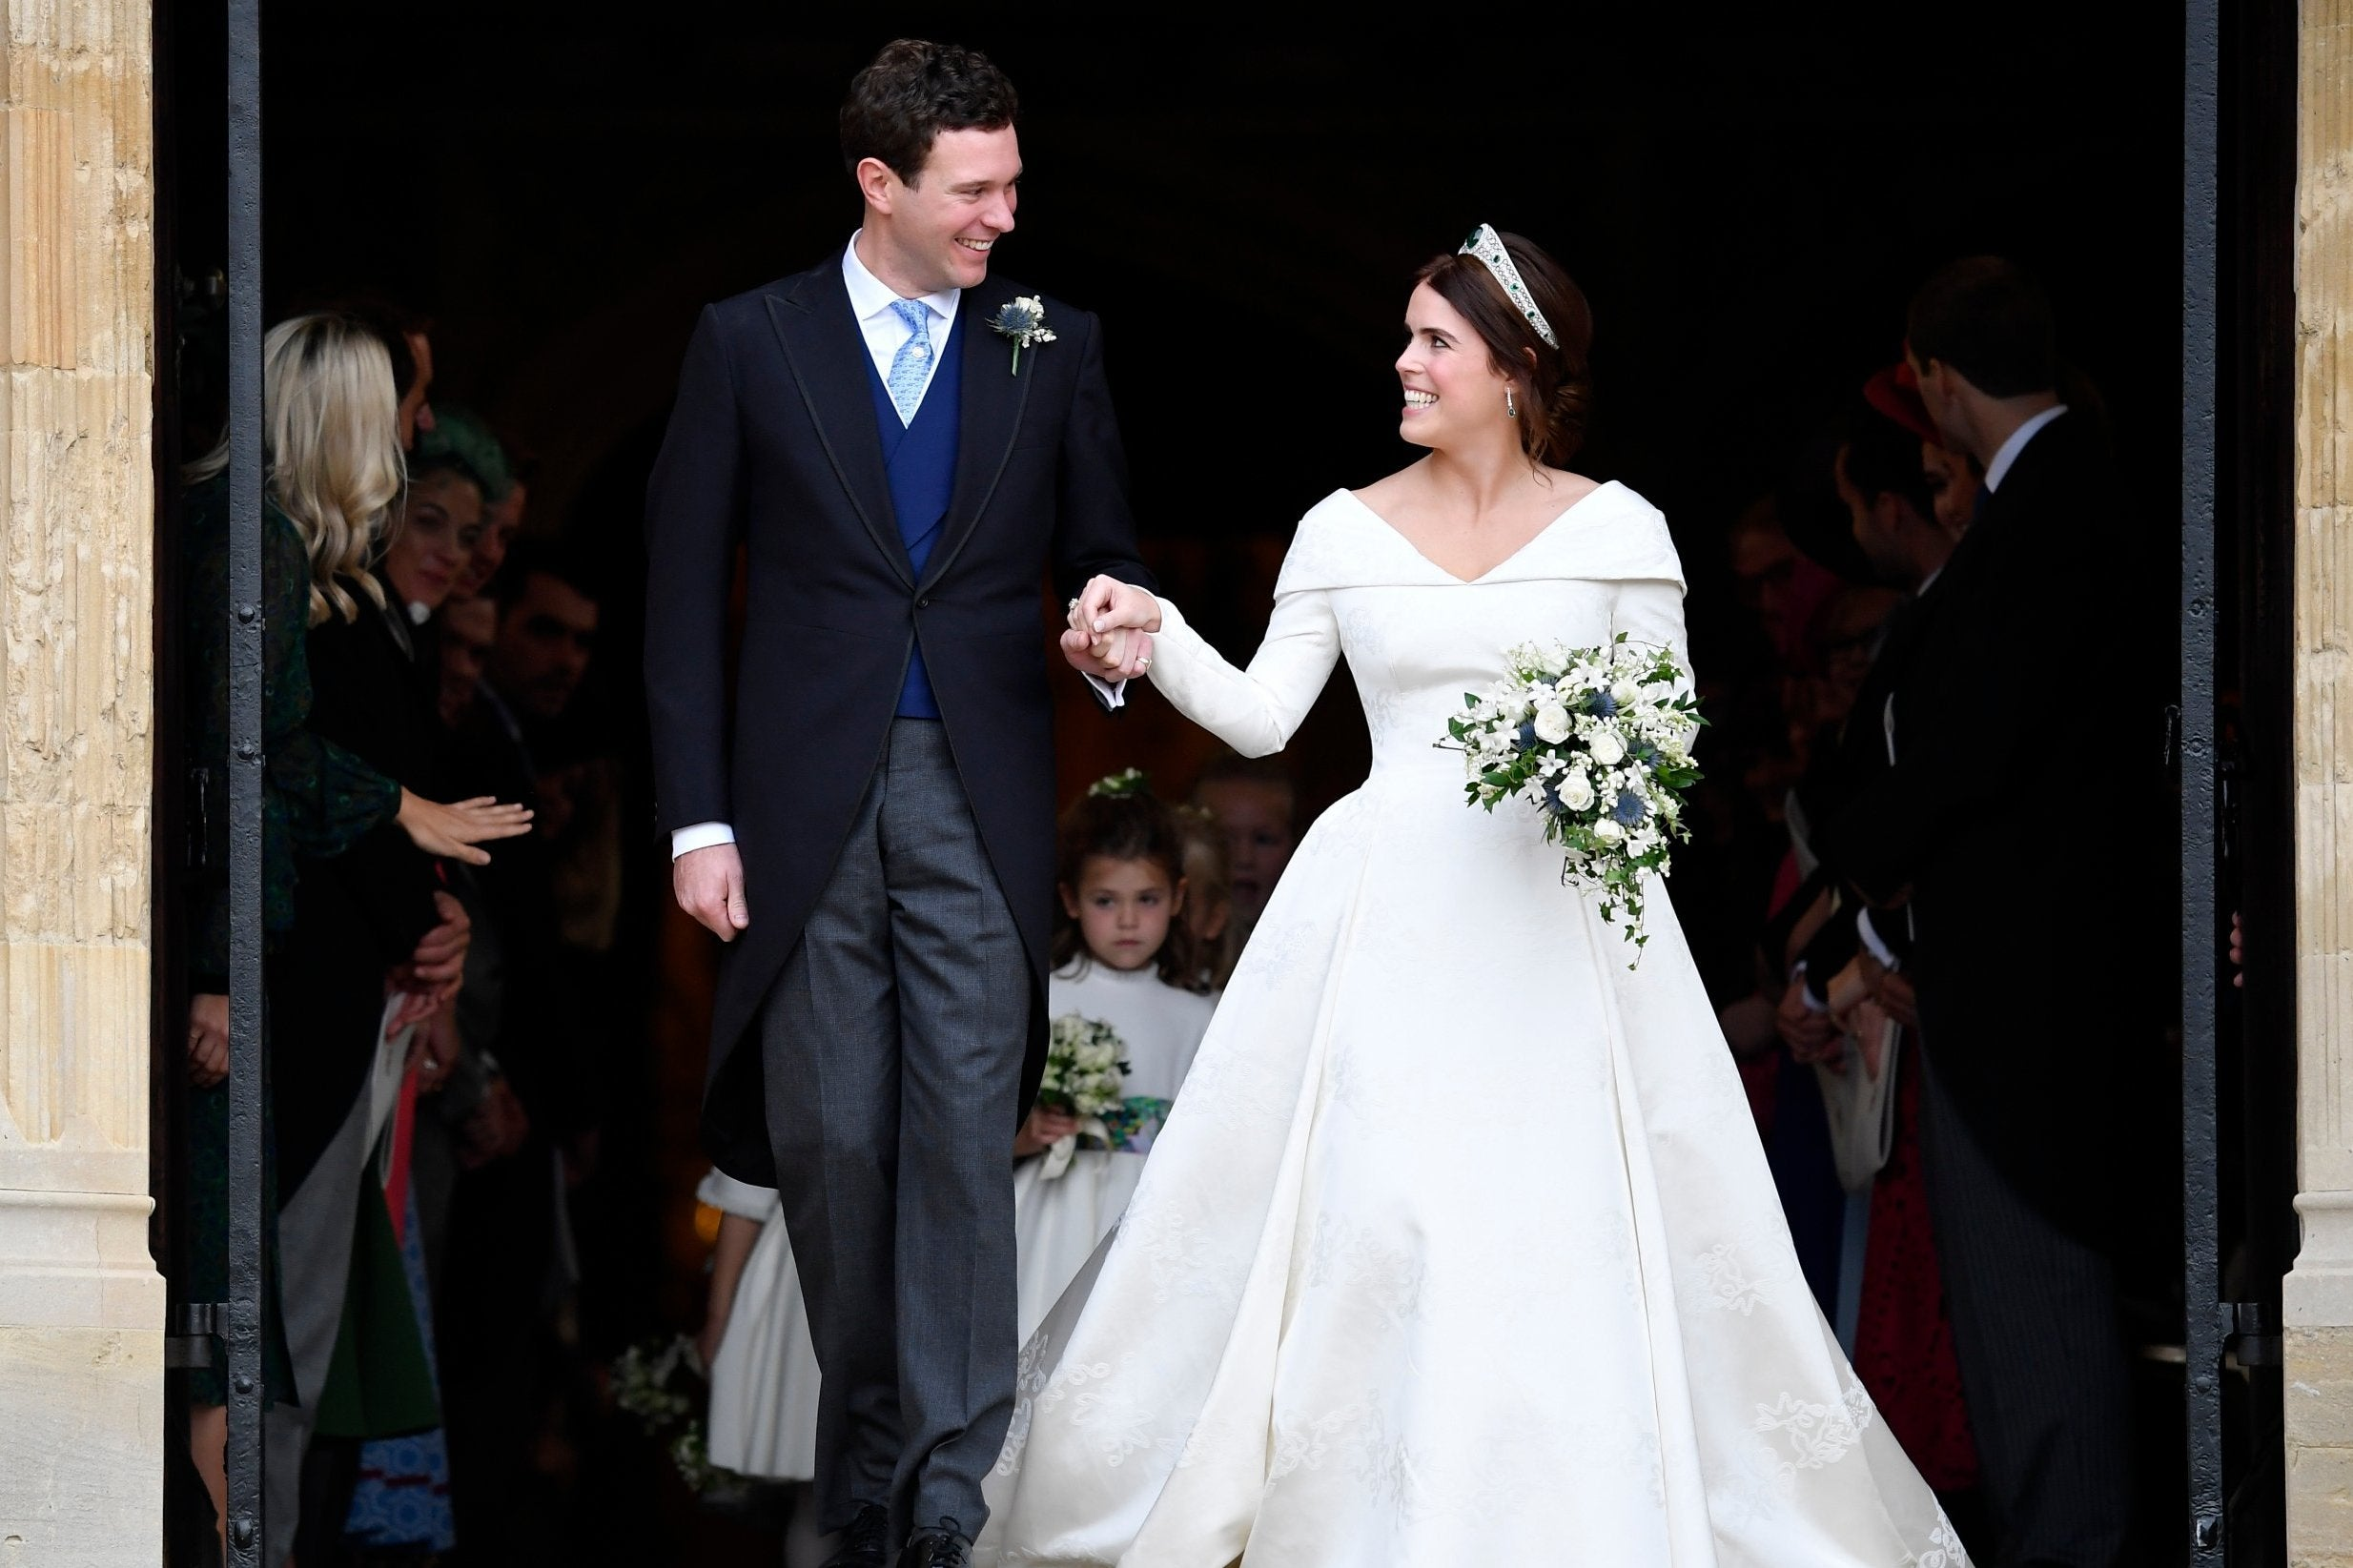 Peter Pilotto: Who is the designer that made Princess Beatrice's wedding dress?